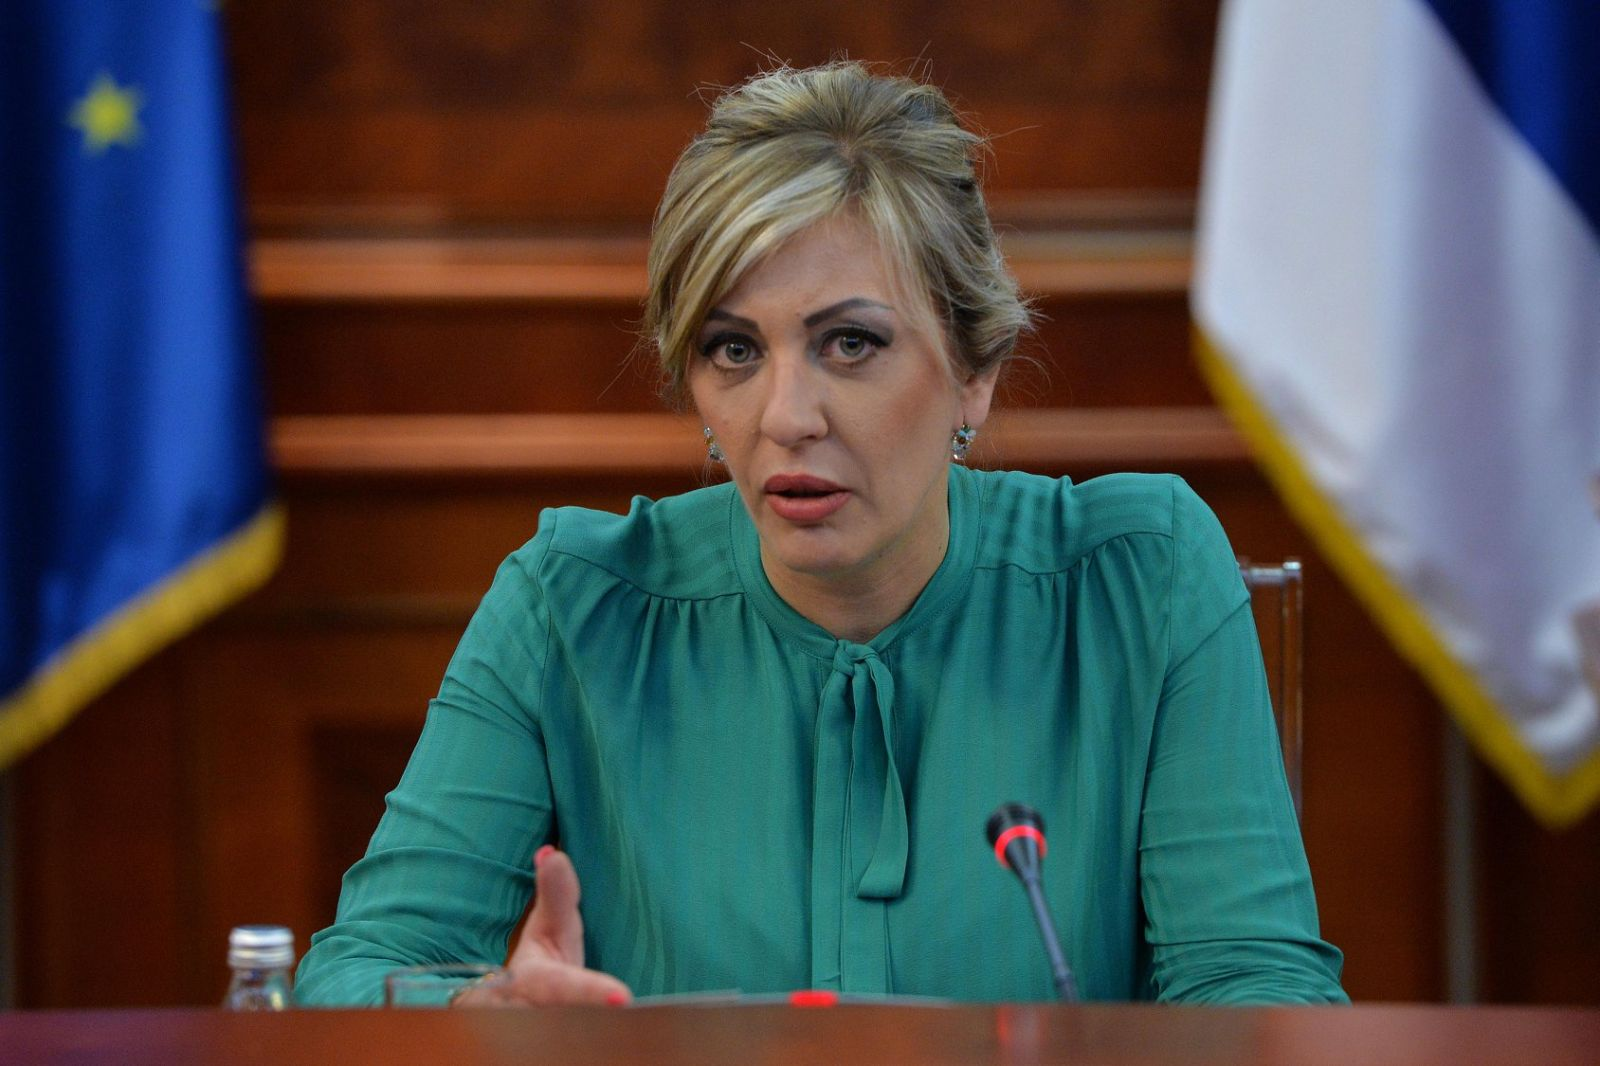 J. Joksimović: Violent incursions into institutions show a lack of democratic values